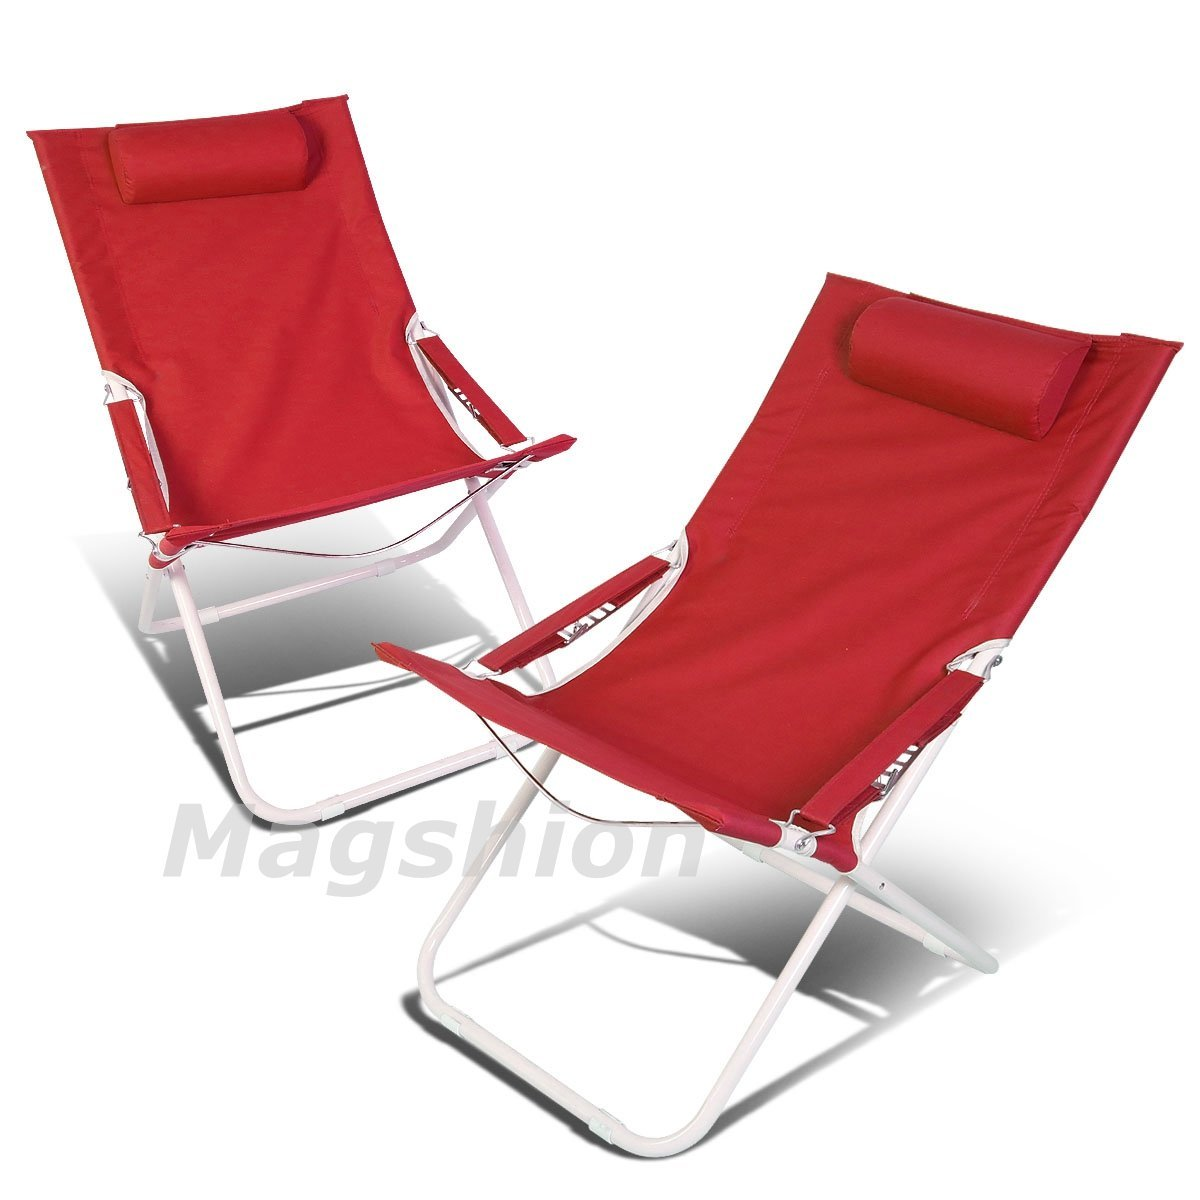 tommy bahama beach chair amazon bf c e ffaa facfceedba